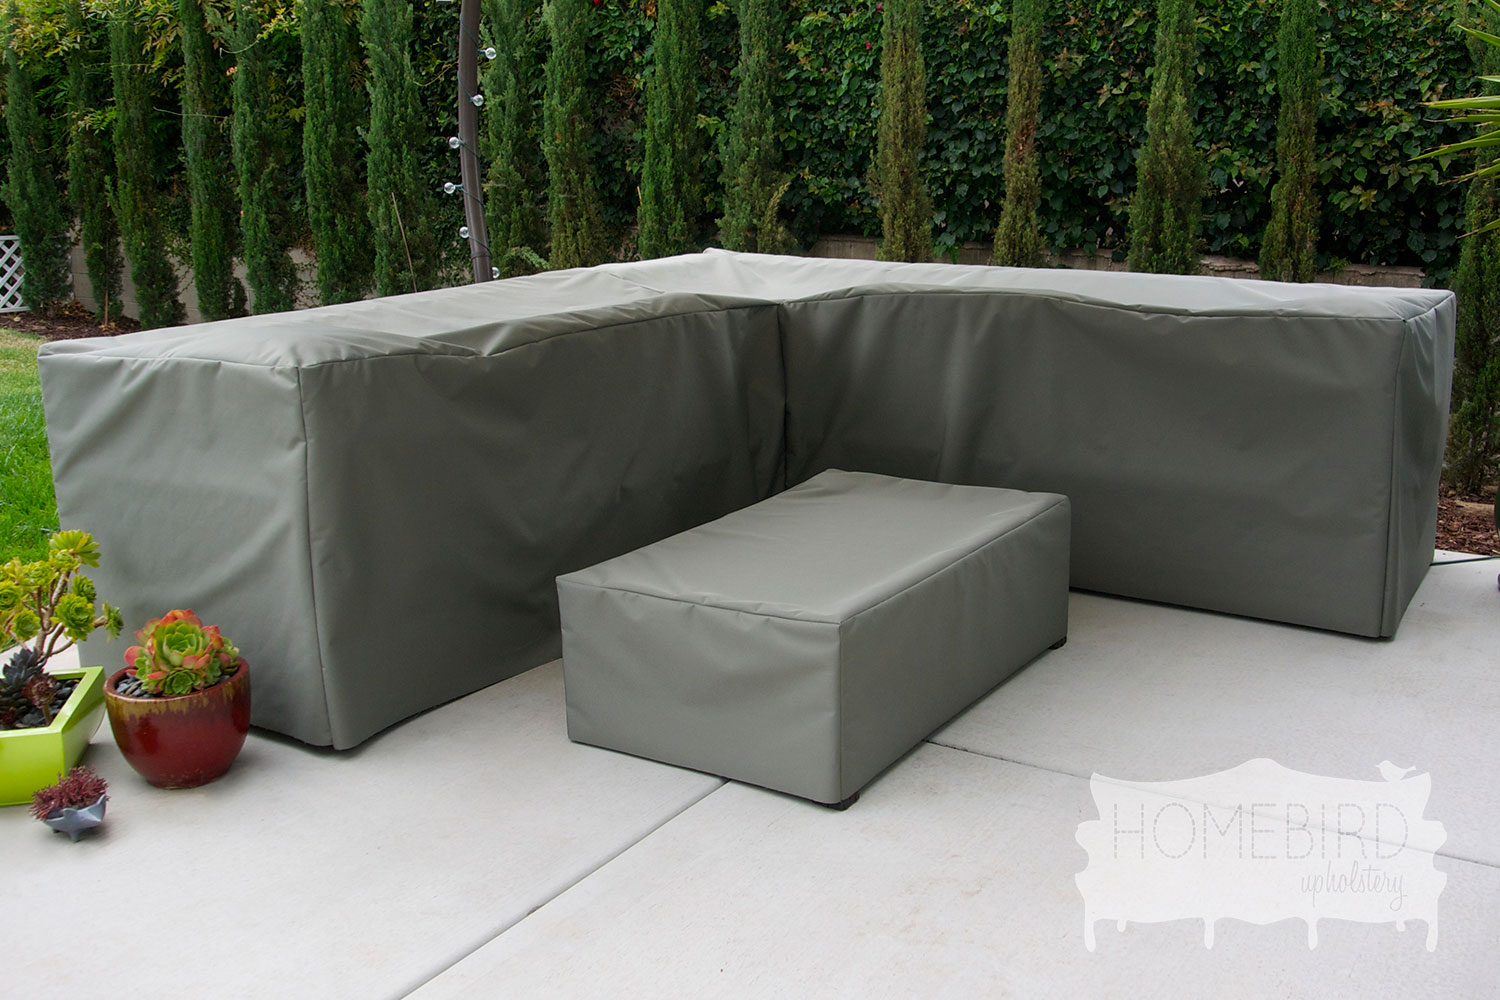 Ordinaire Custom Order: Patio Furniture Covers 1